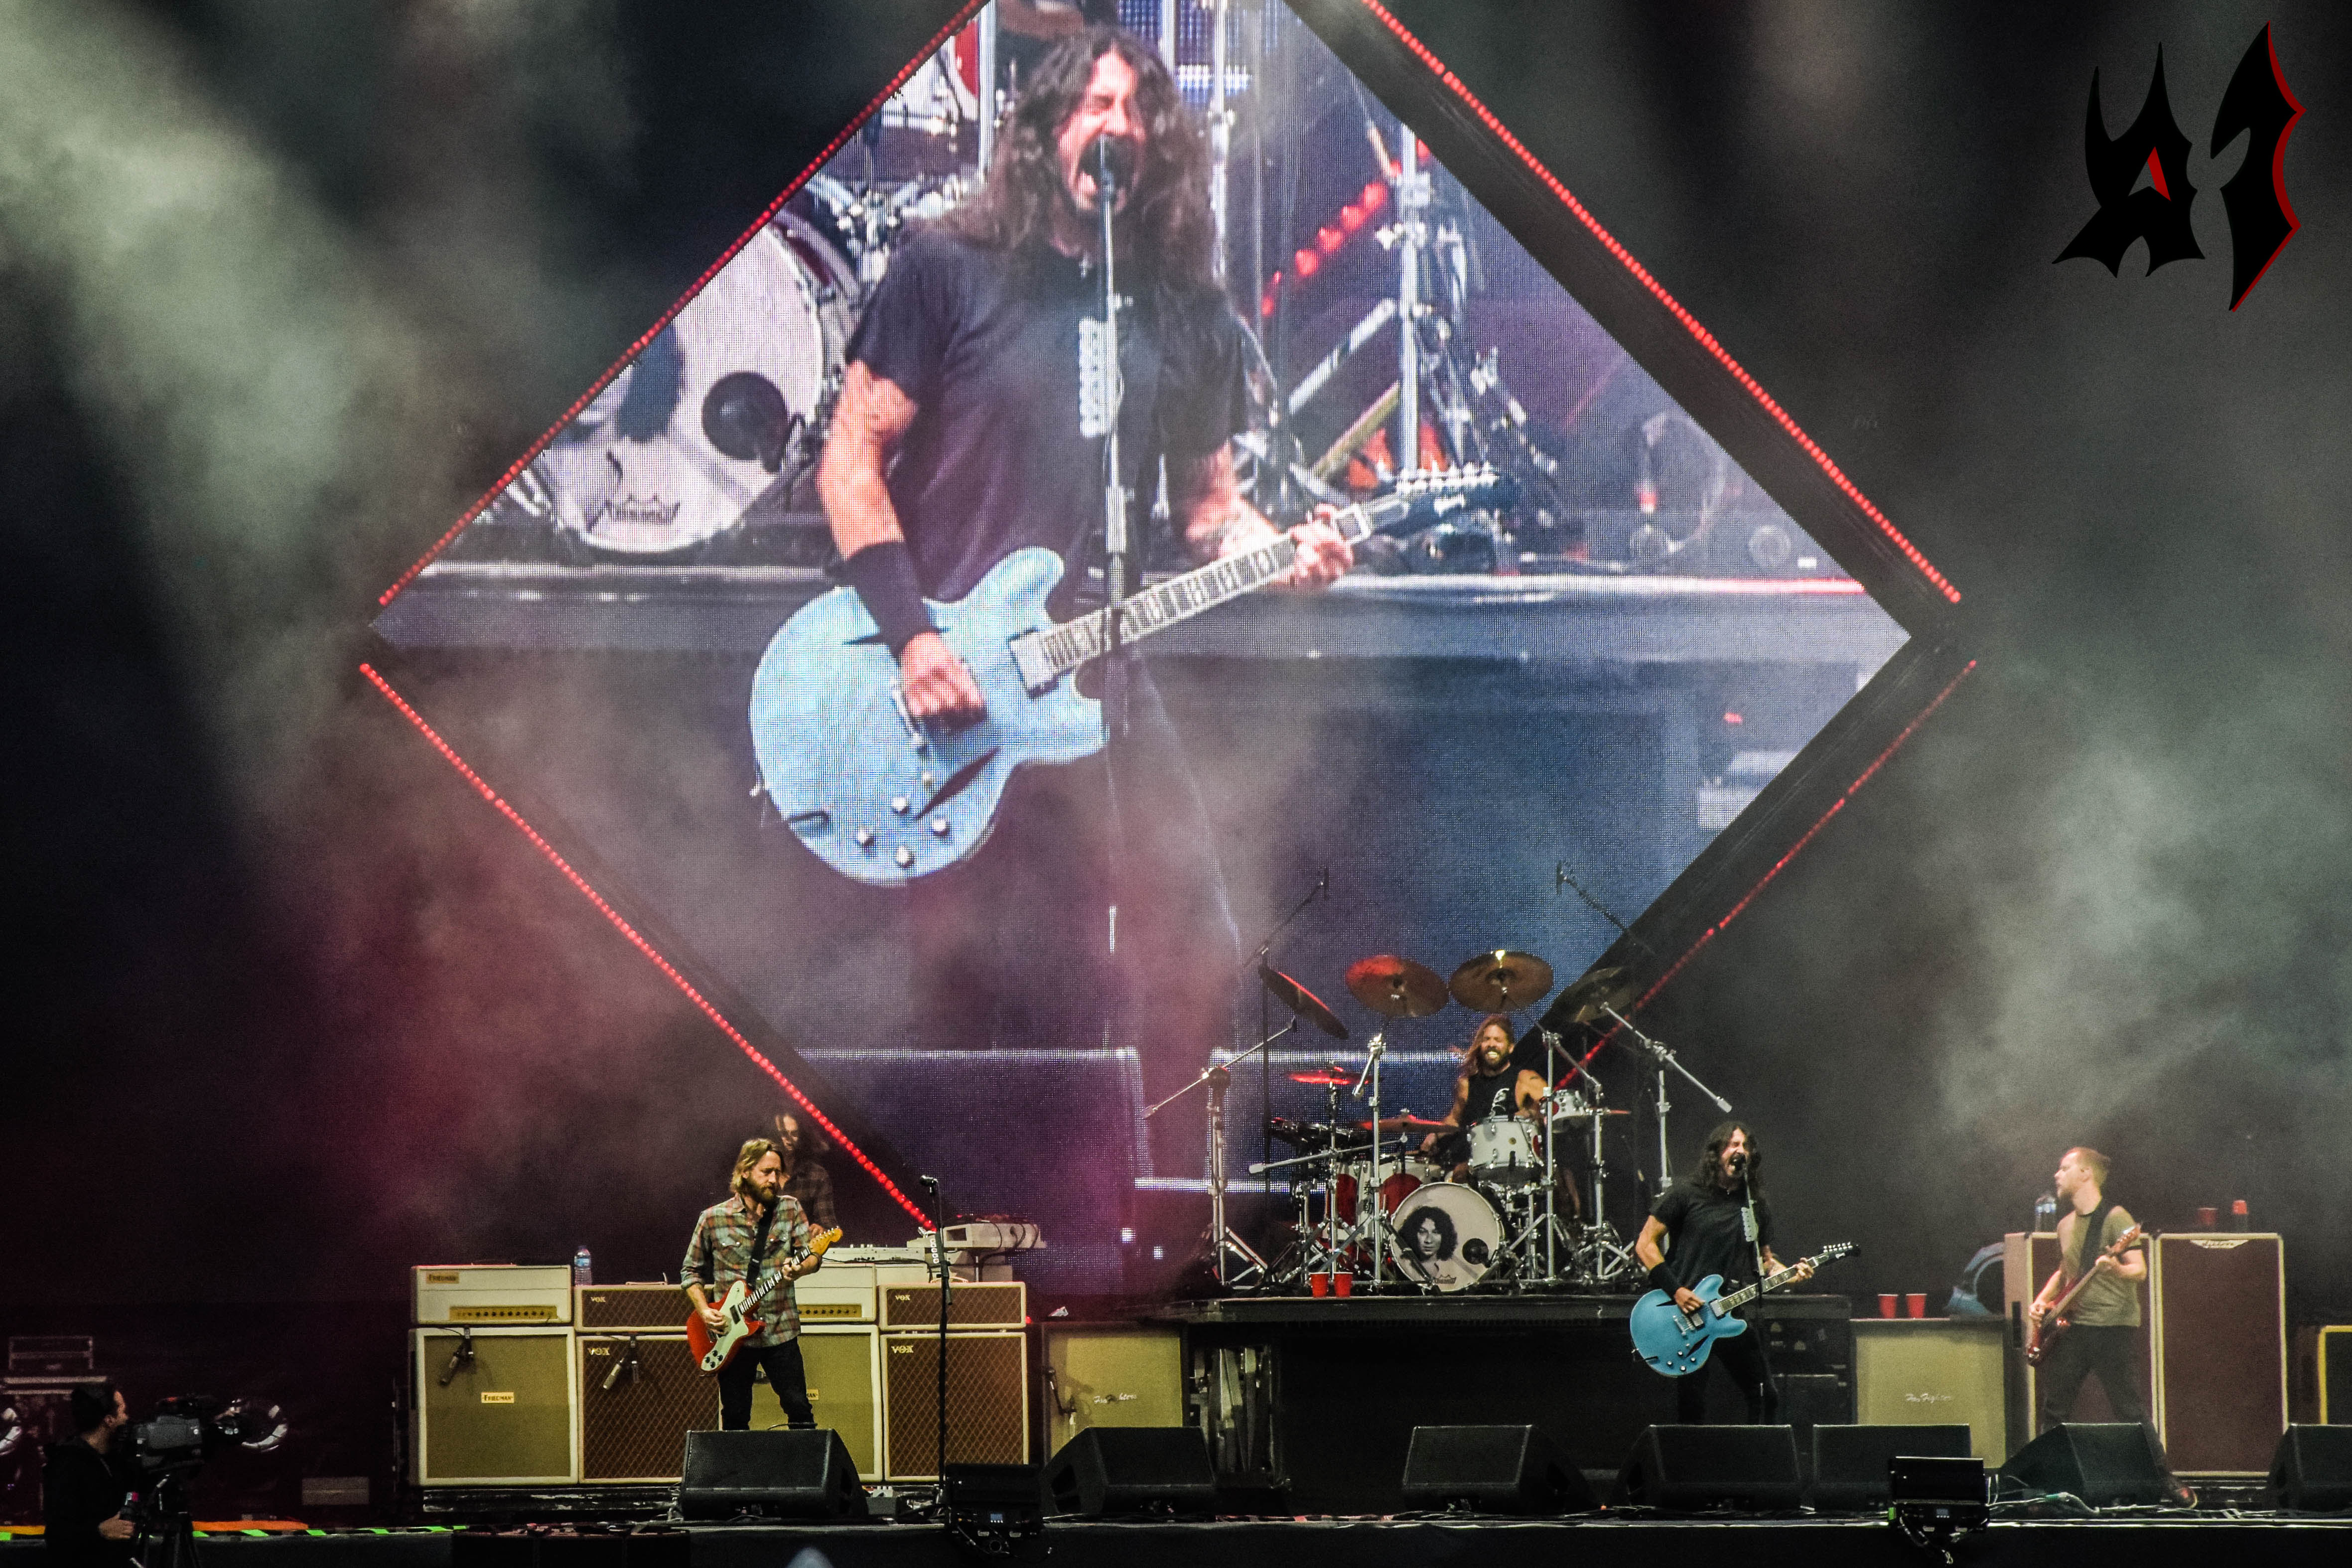 Donwload 2018 – Day 3 - Foo Fighters 4